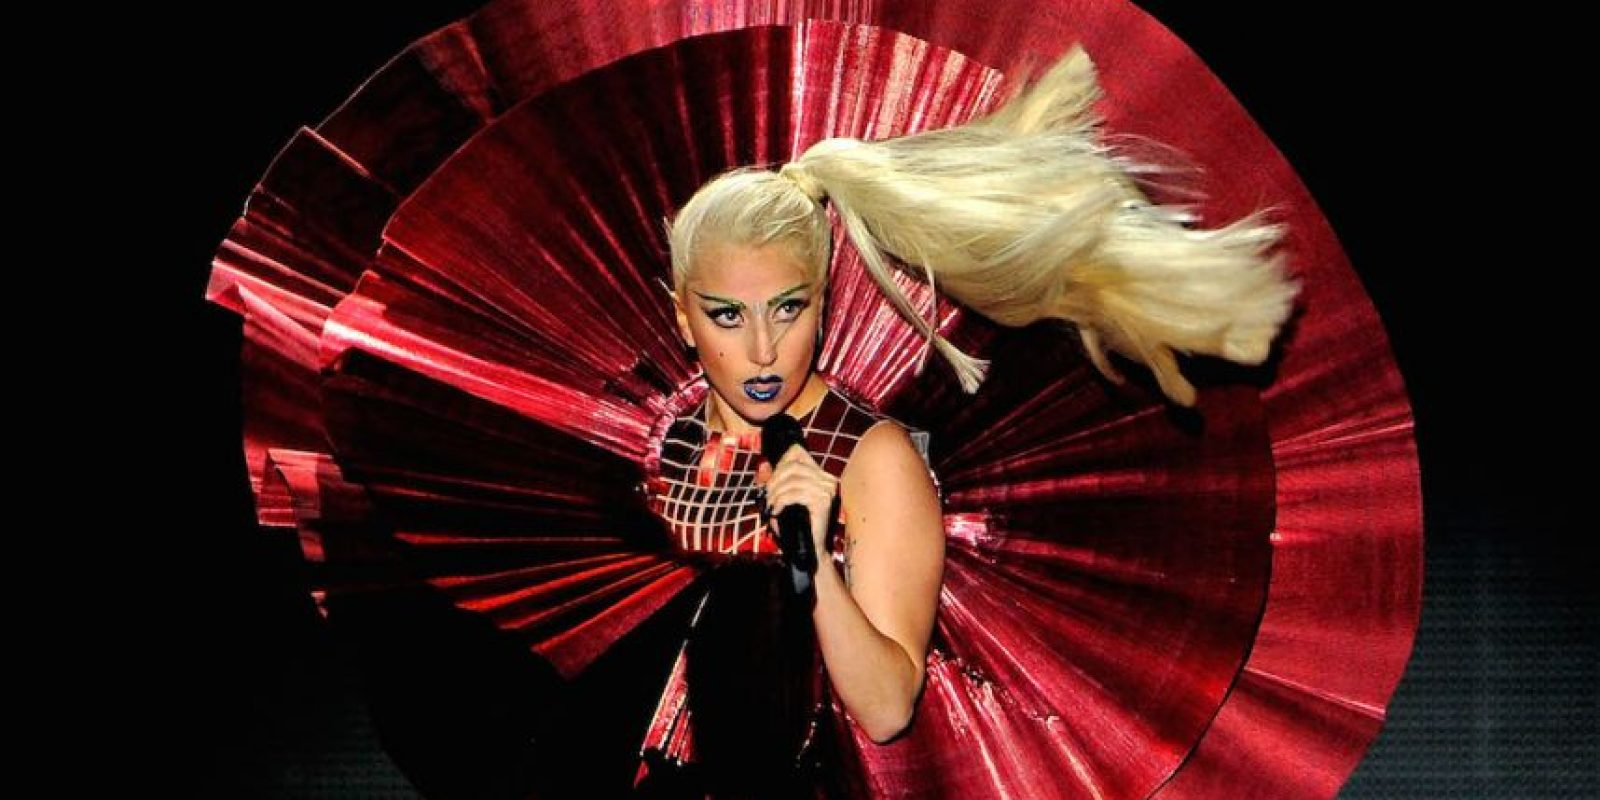 La estadounidense Lady Gaga, de 29 años de edad, ha ganado seis Premios Gramy y trece MTV Video Music Awards. Foto: Getty Images